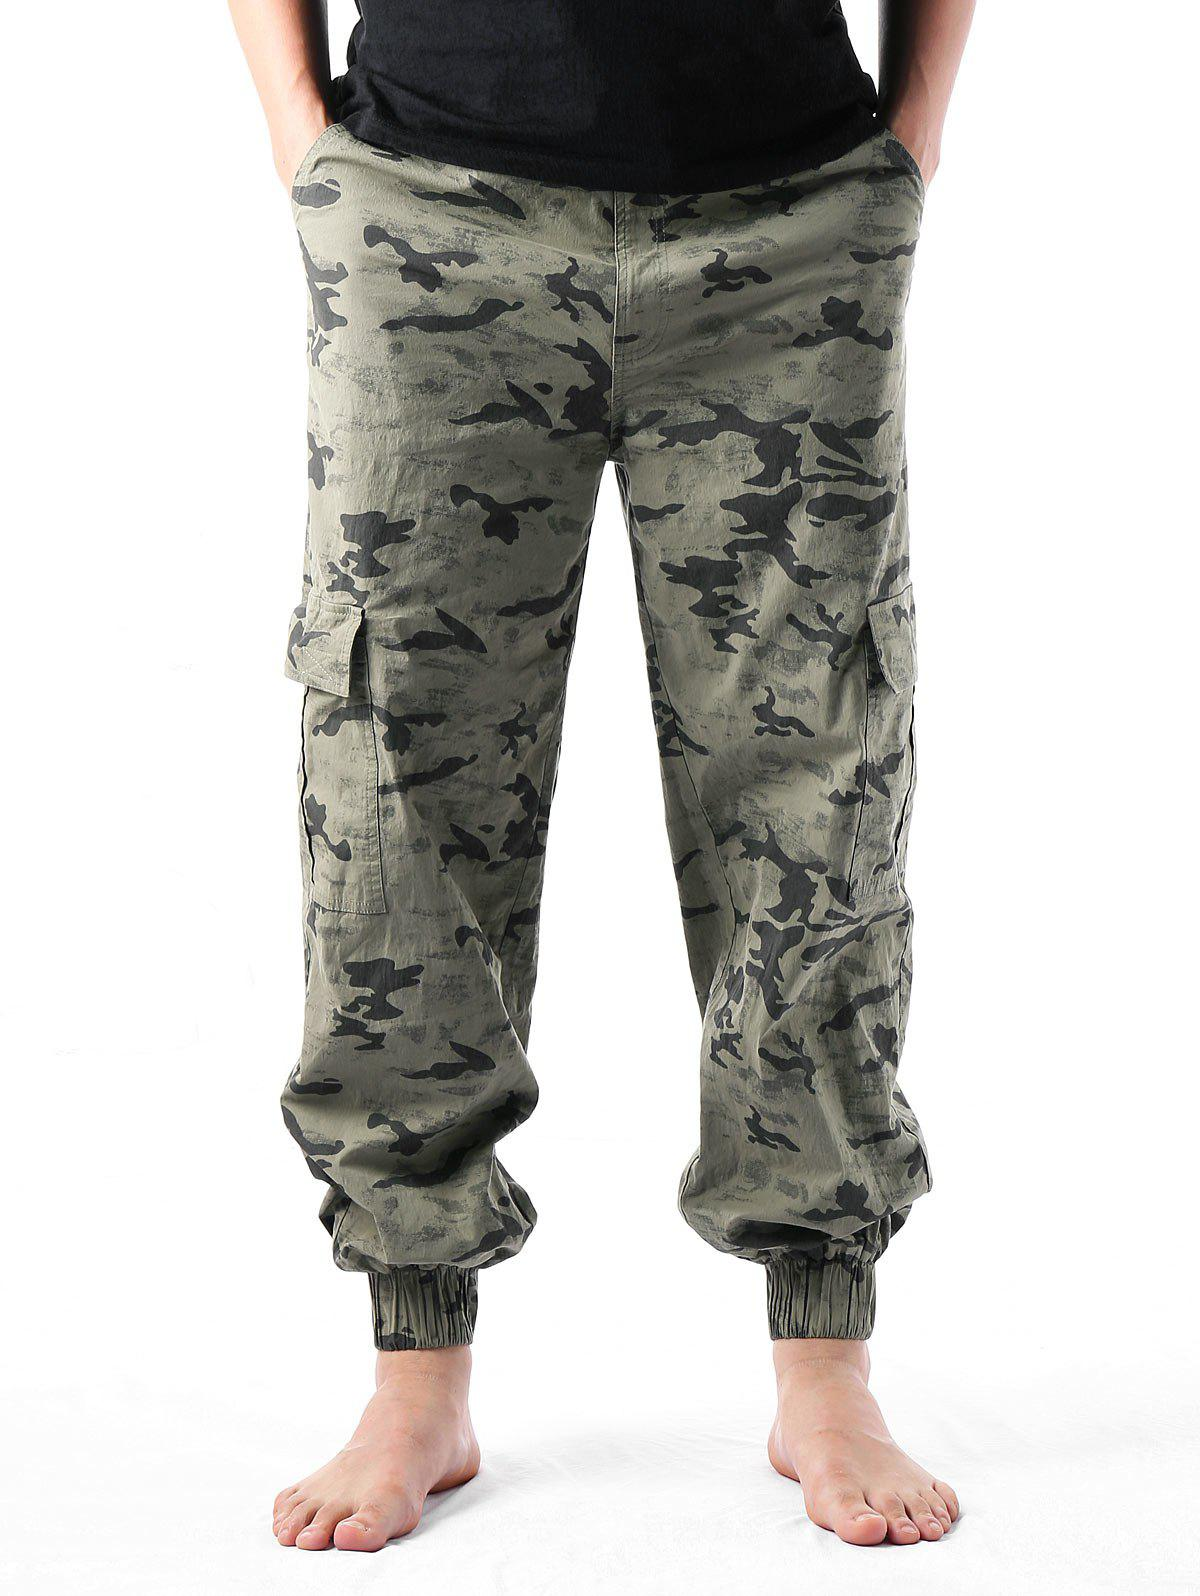 Narrow Feet Camouflage Print Multi-pockets Cargo Pants - ARMY GREEN M